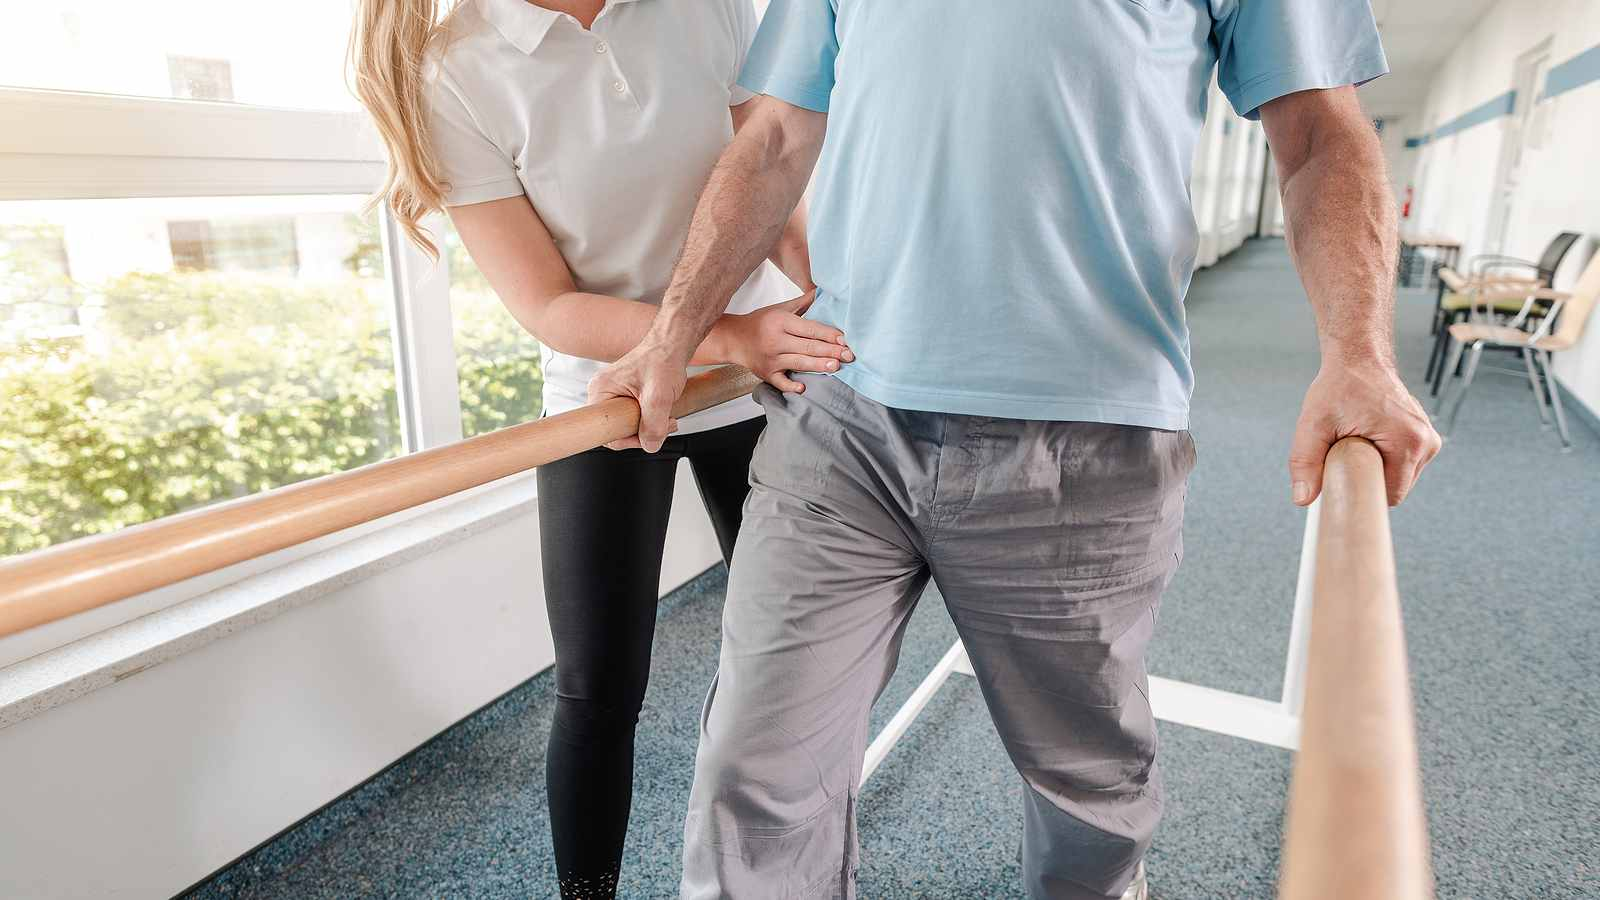 Parkinson's Management: Pandemic-Related Deconditioning – Case Studies : Alter your physiotherapy approach to encourage continued activity for your patients with parkinson's during the pandemic